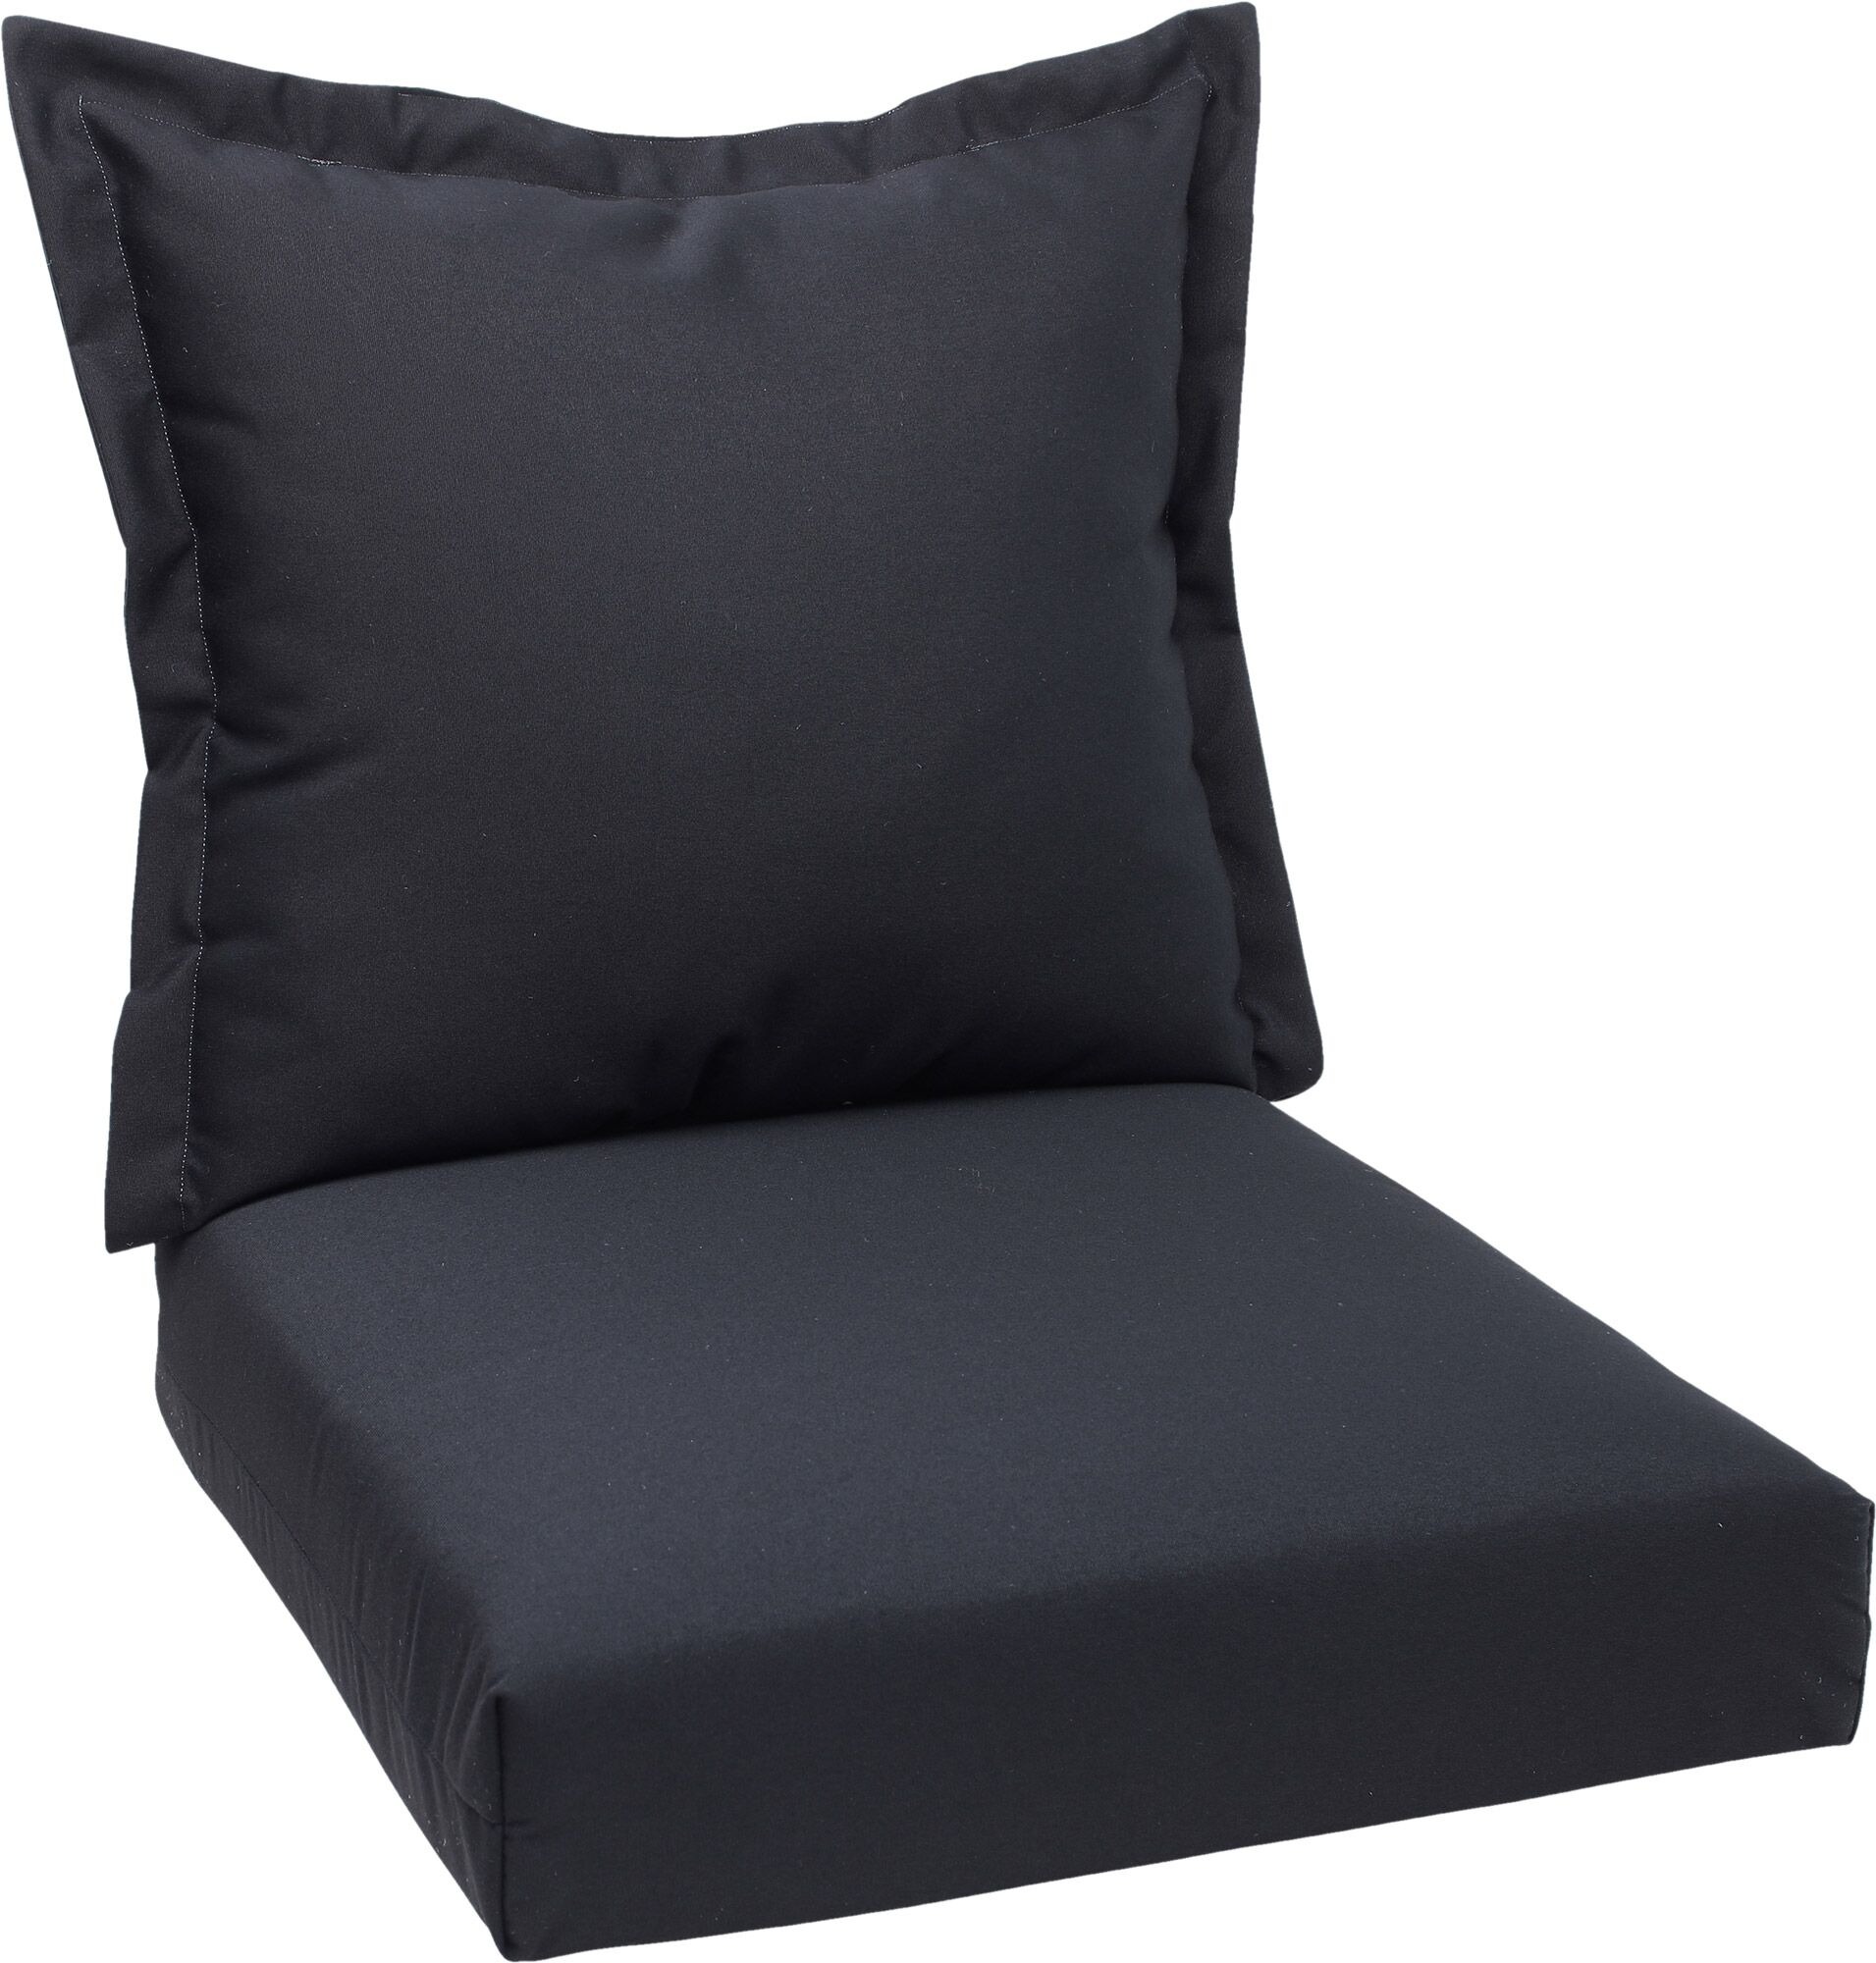 Indoor/Outdoor Lounge Chair Cushions Fabric: Black